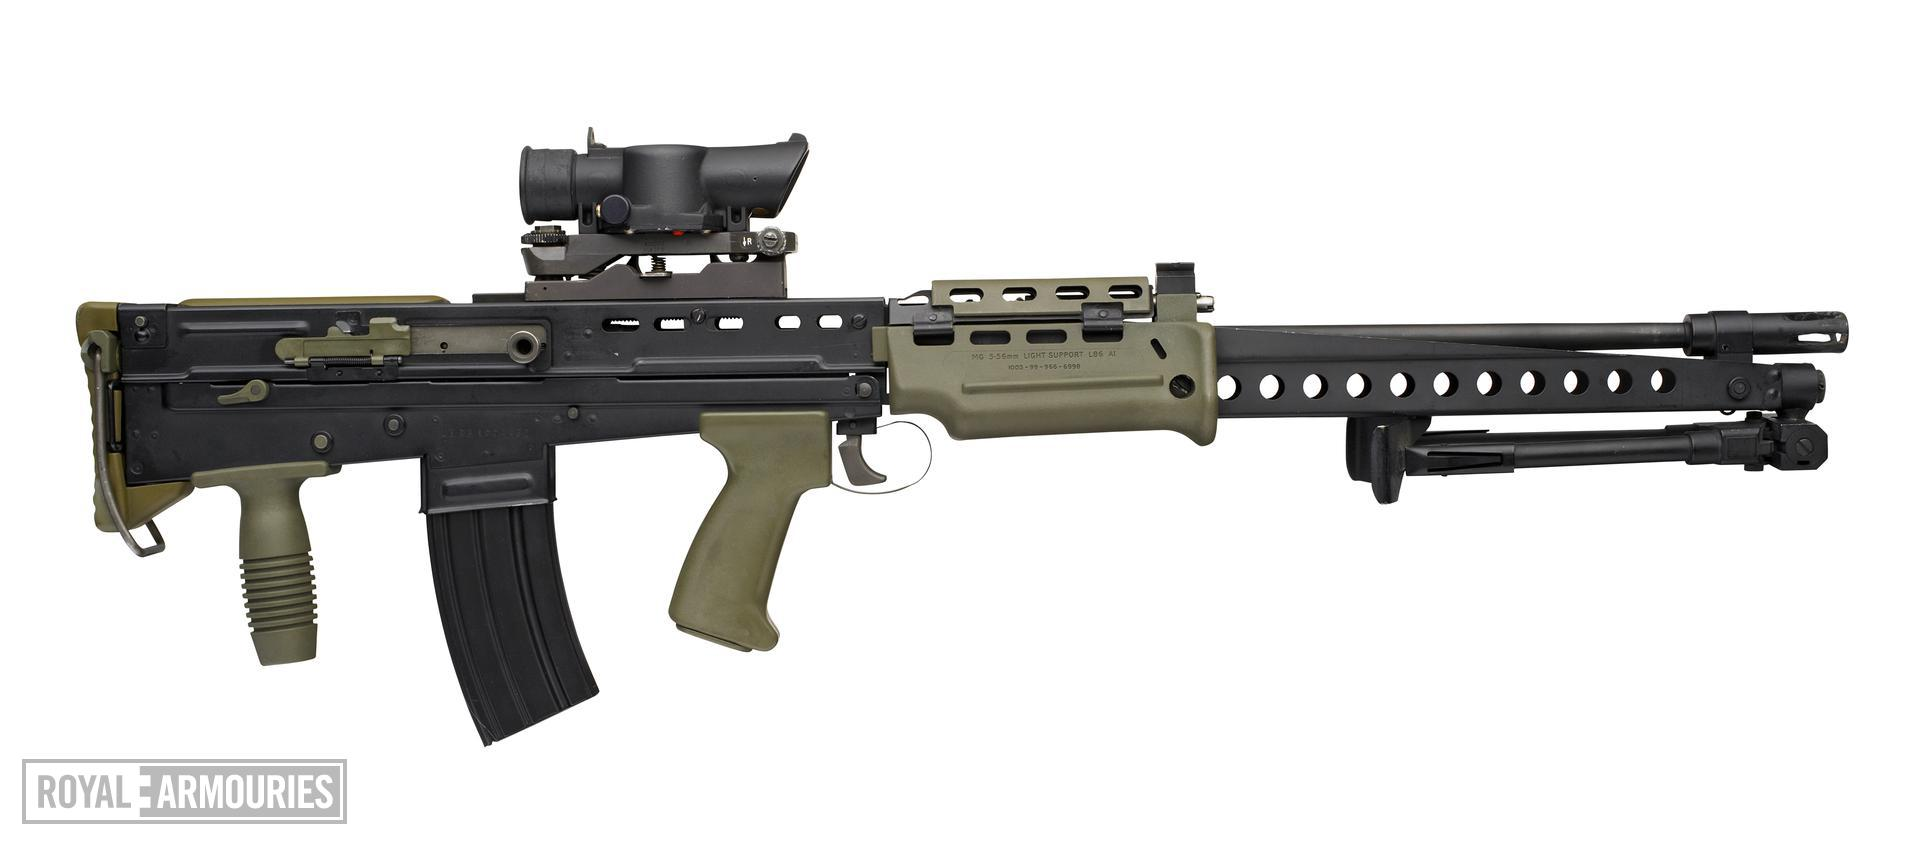 Centrefire automatic light machine gun - SA80 L86A1